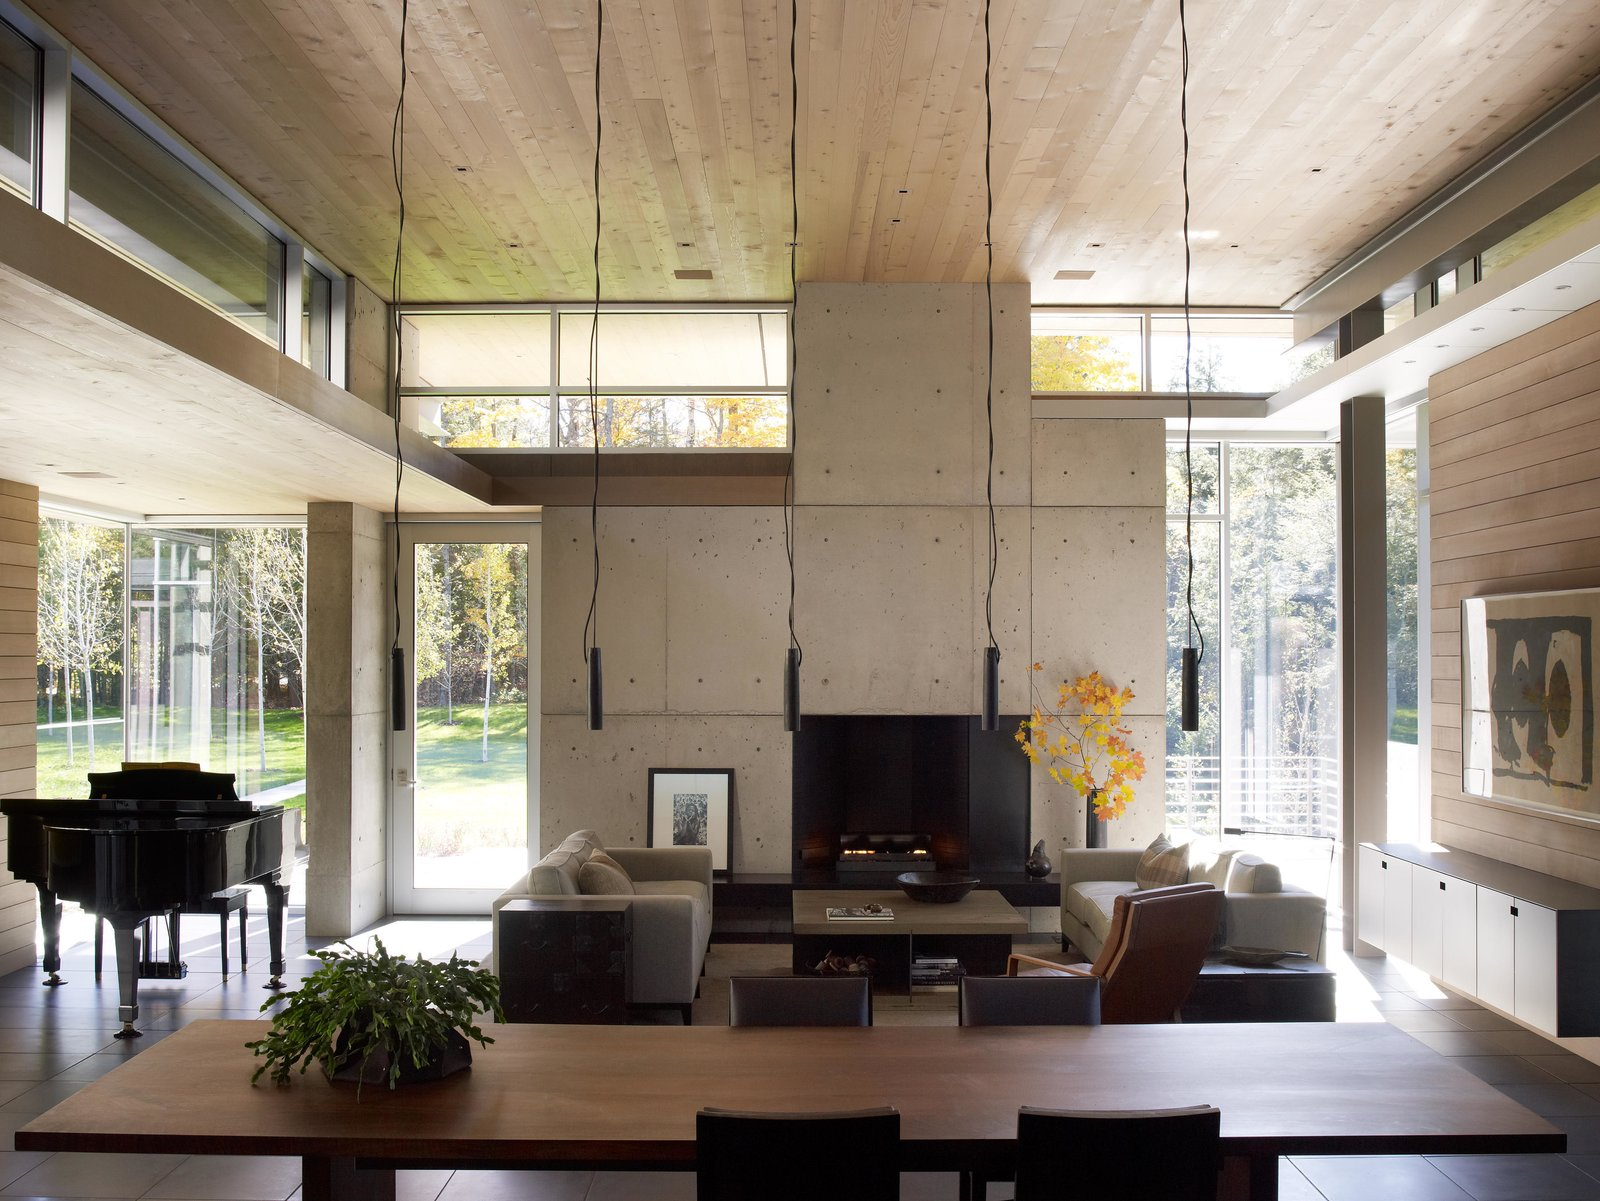 Northwoods House Tagged: Exterior, Wood, Coffee Tables, Garden, Pendant Lighting, Ceiling Lighting, Sofa, Metal, and Living Room.  Northwoods House by Olson Kundig